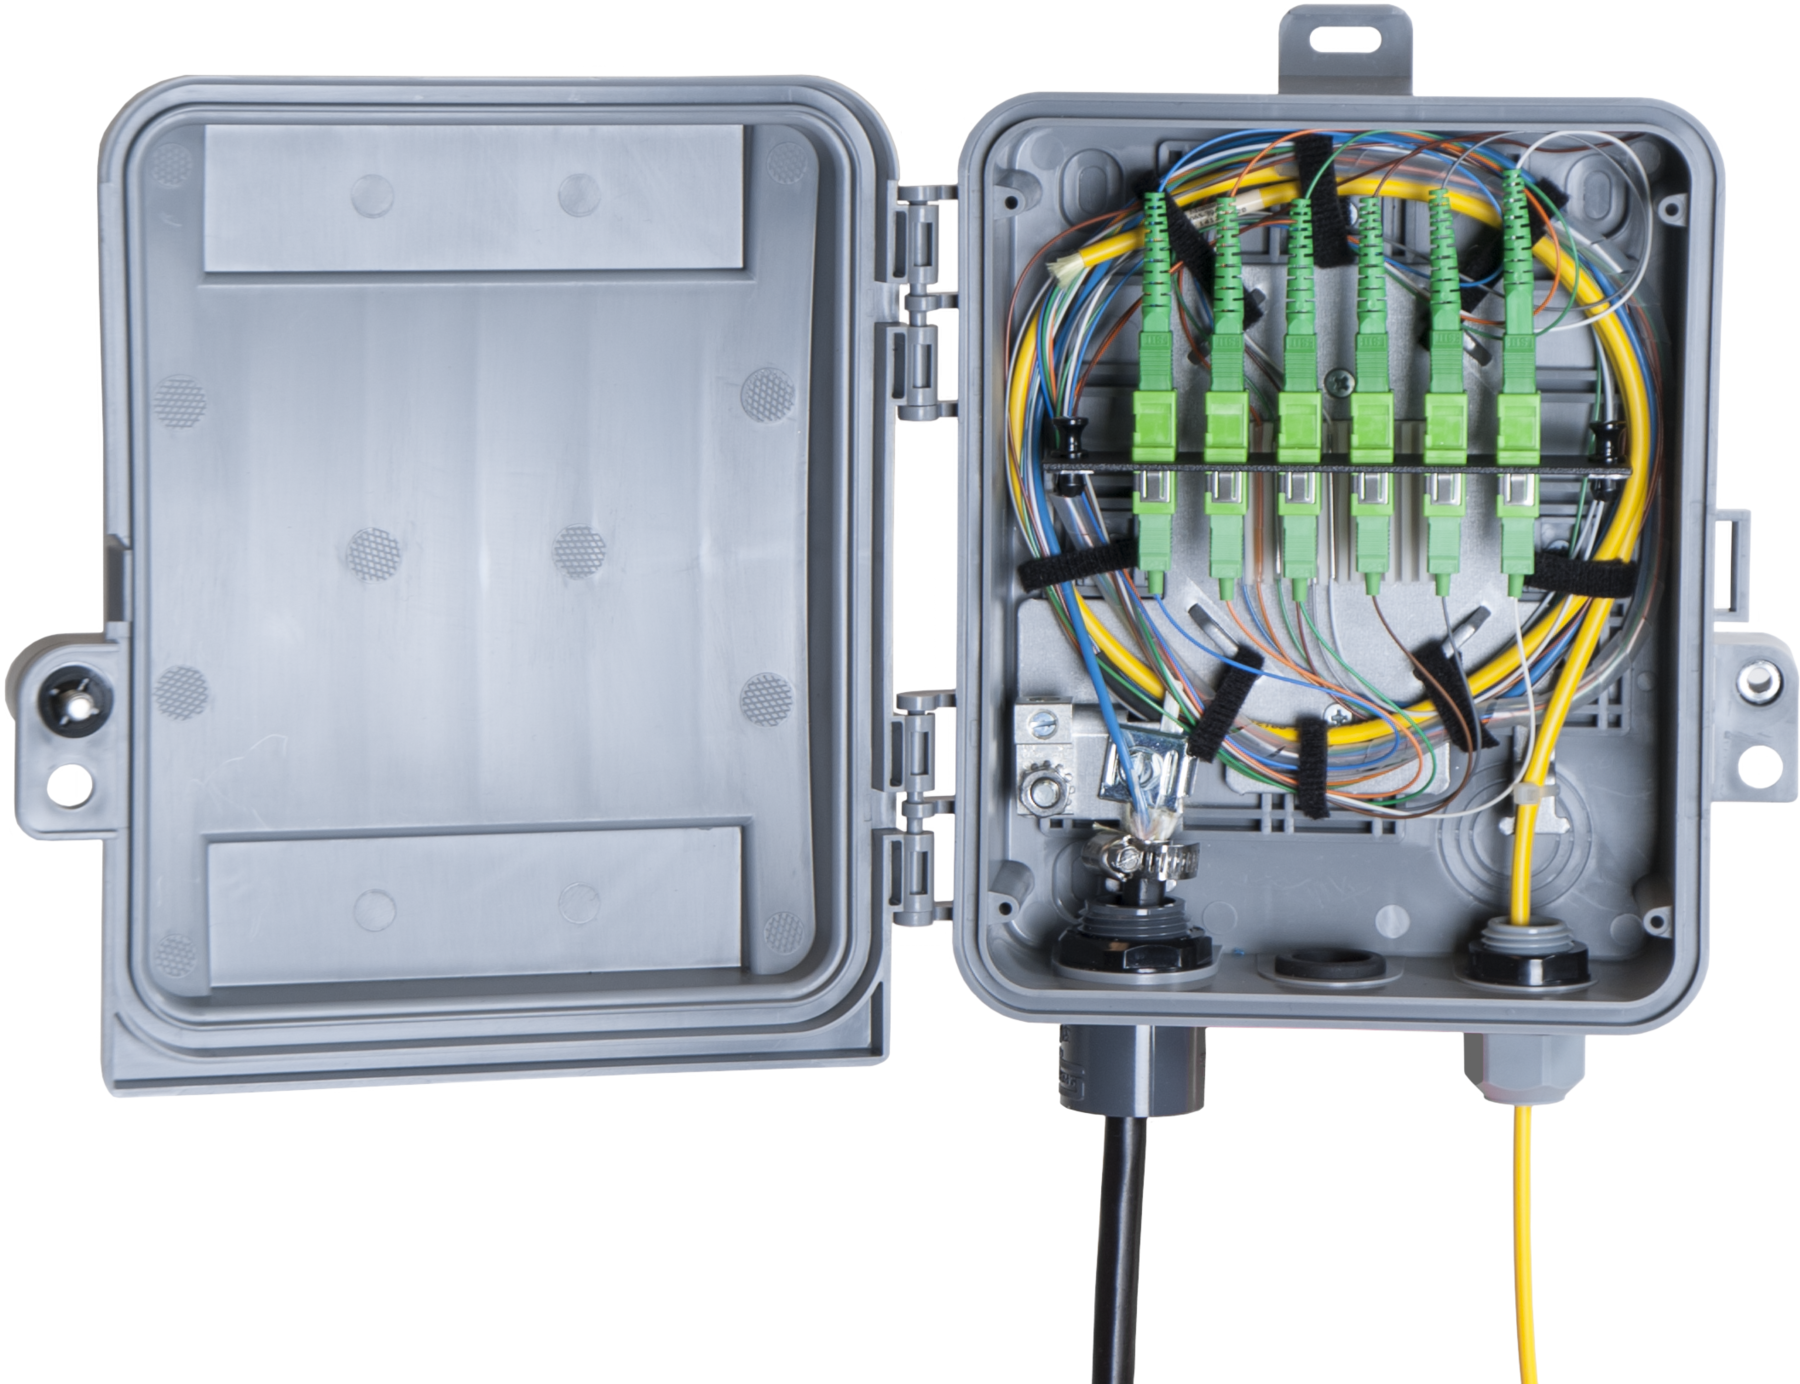 outdoor wiring enclosure wiring solutions rh rausco com Homes for Structured Wiring Enclosure outdoor structured wiring enclosure